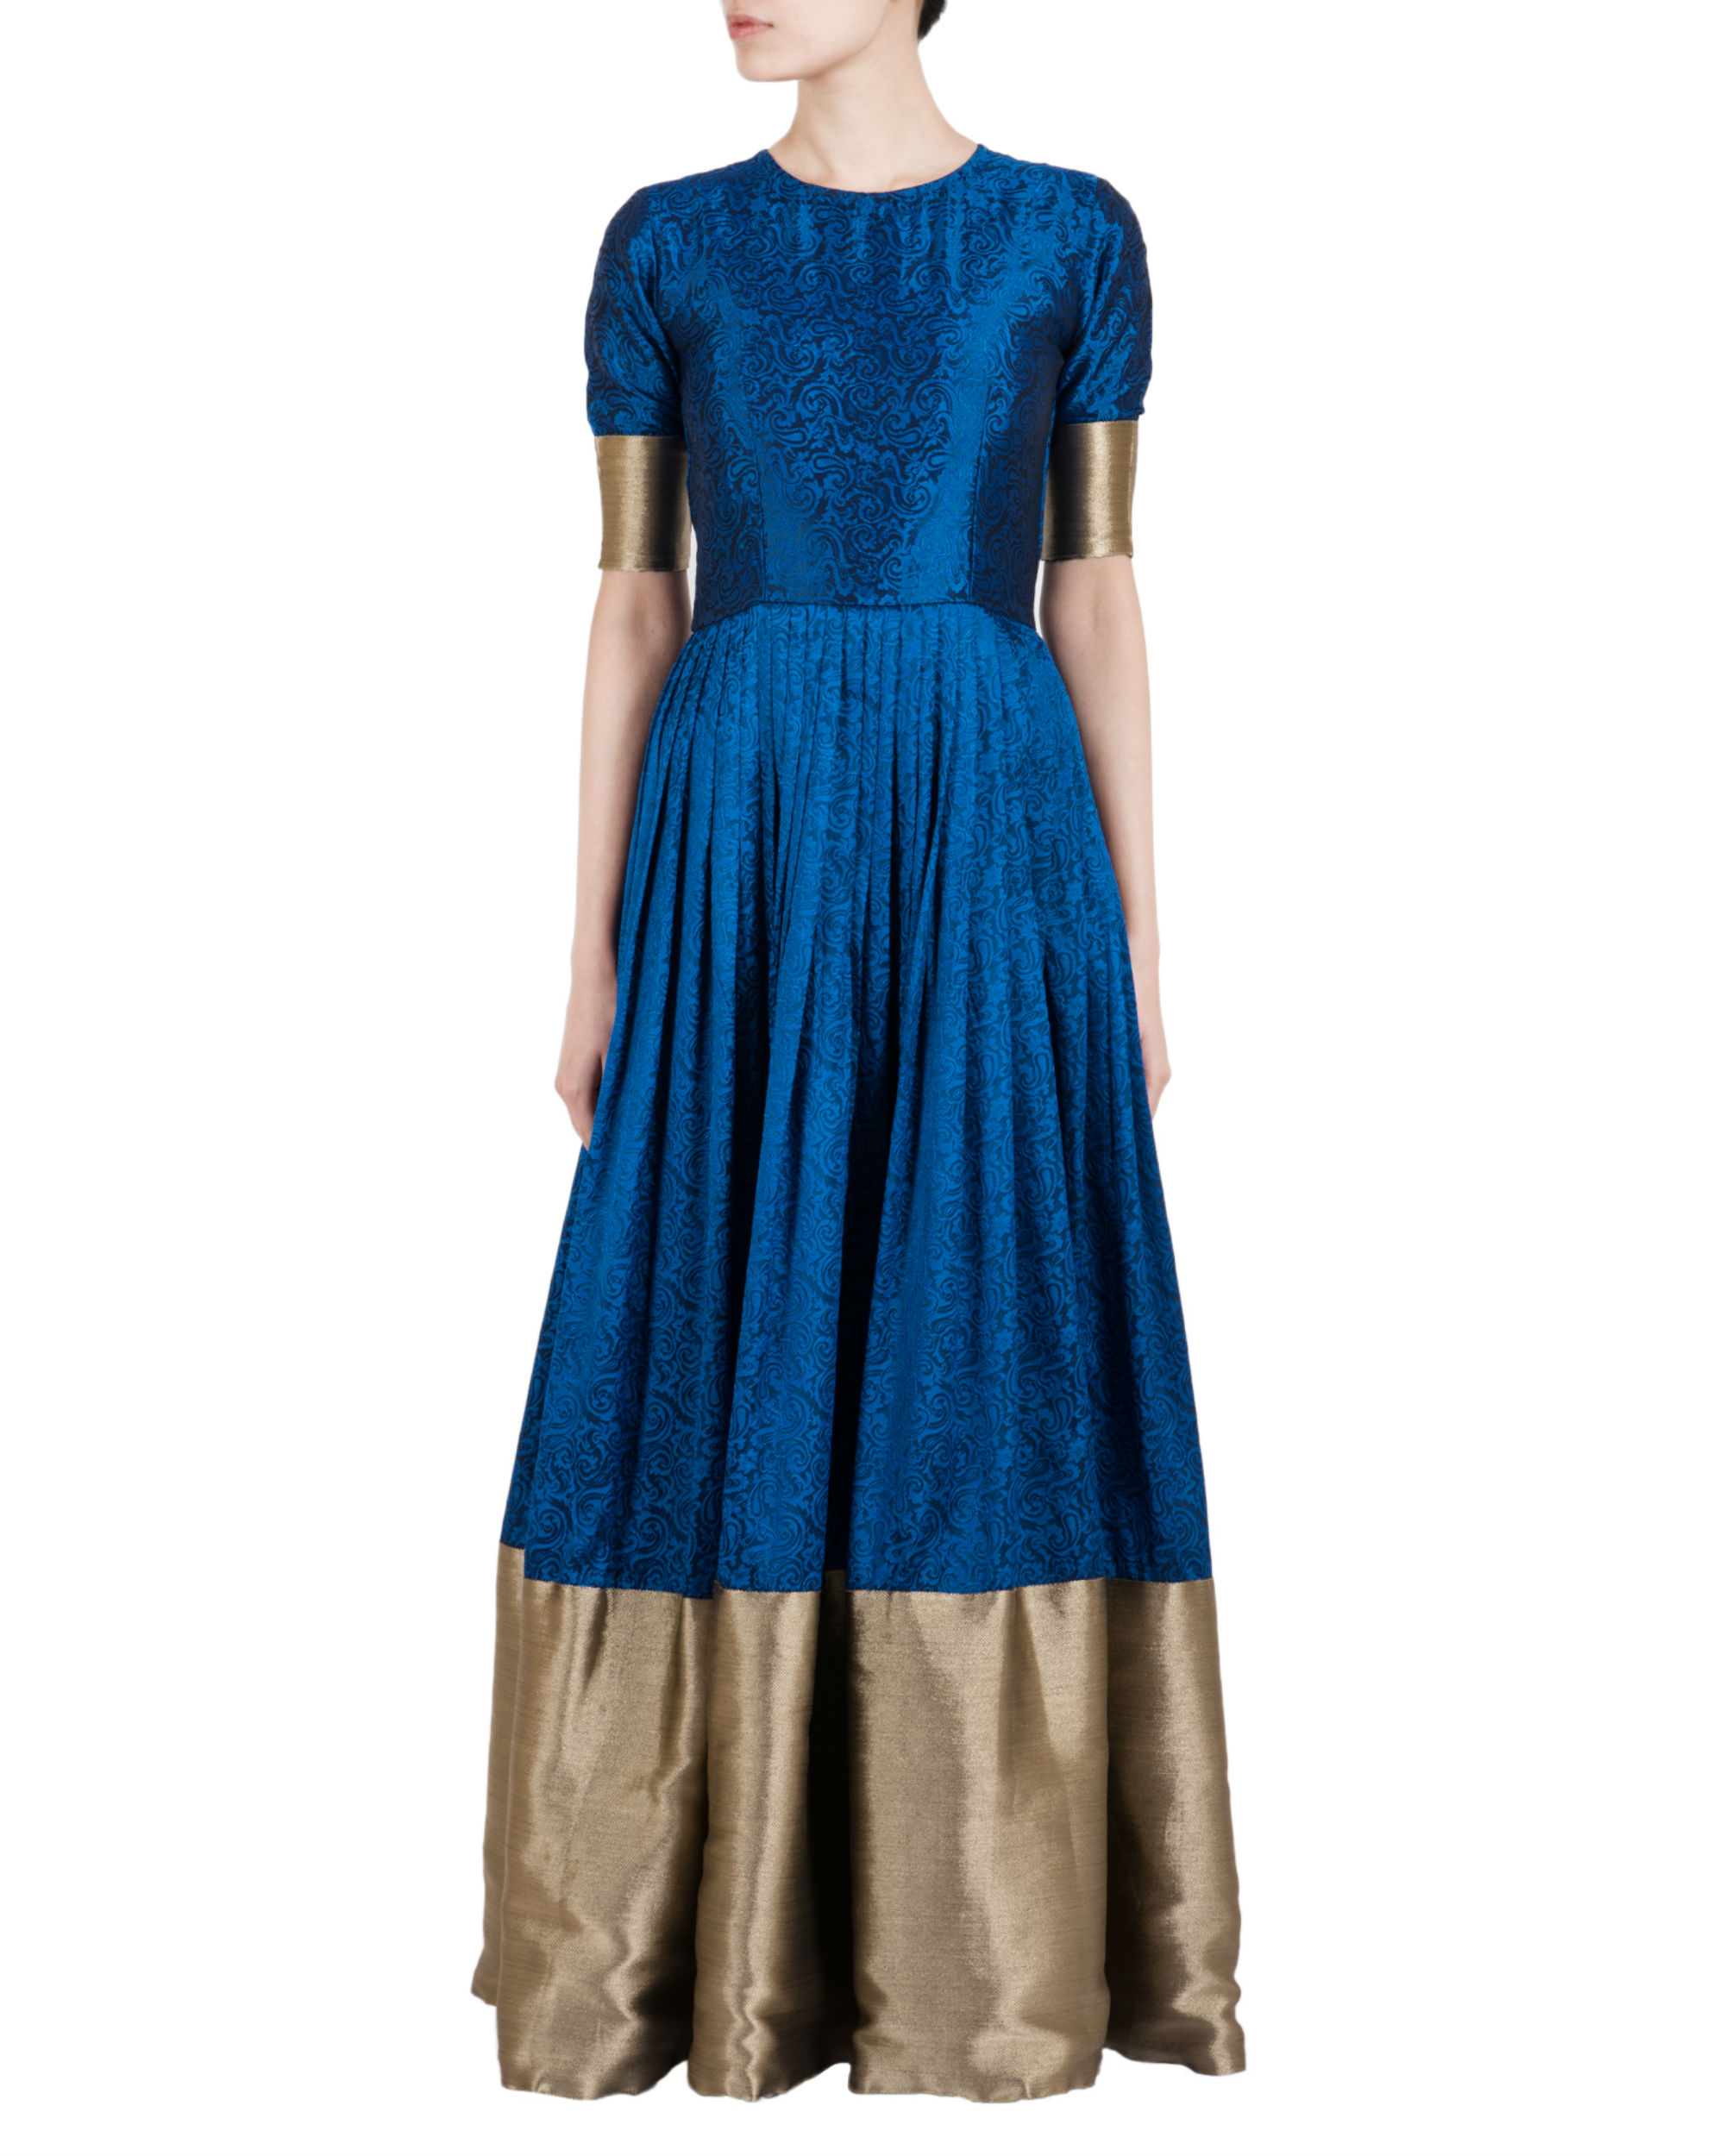 267aa1888 Blue and gold ballroom gown by trueBrowns | The Secret Label